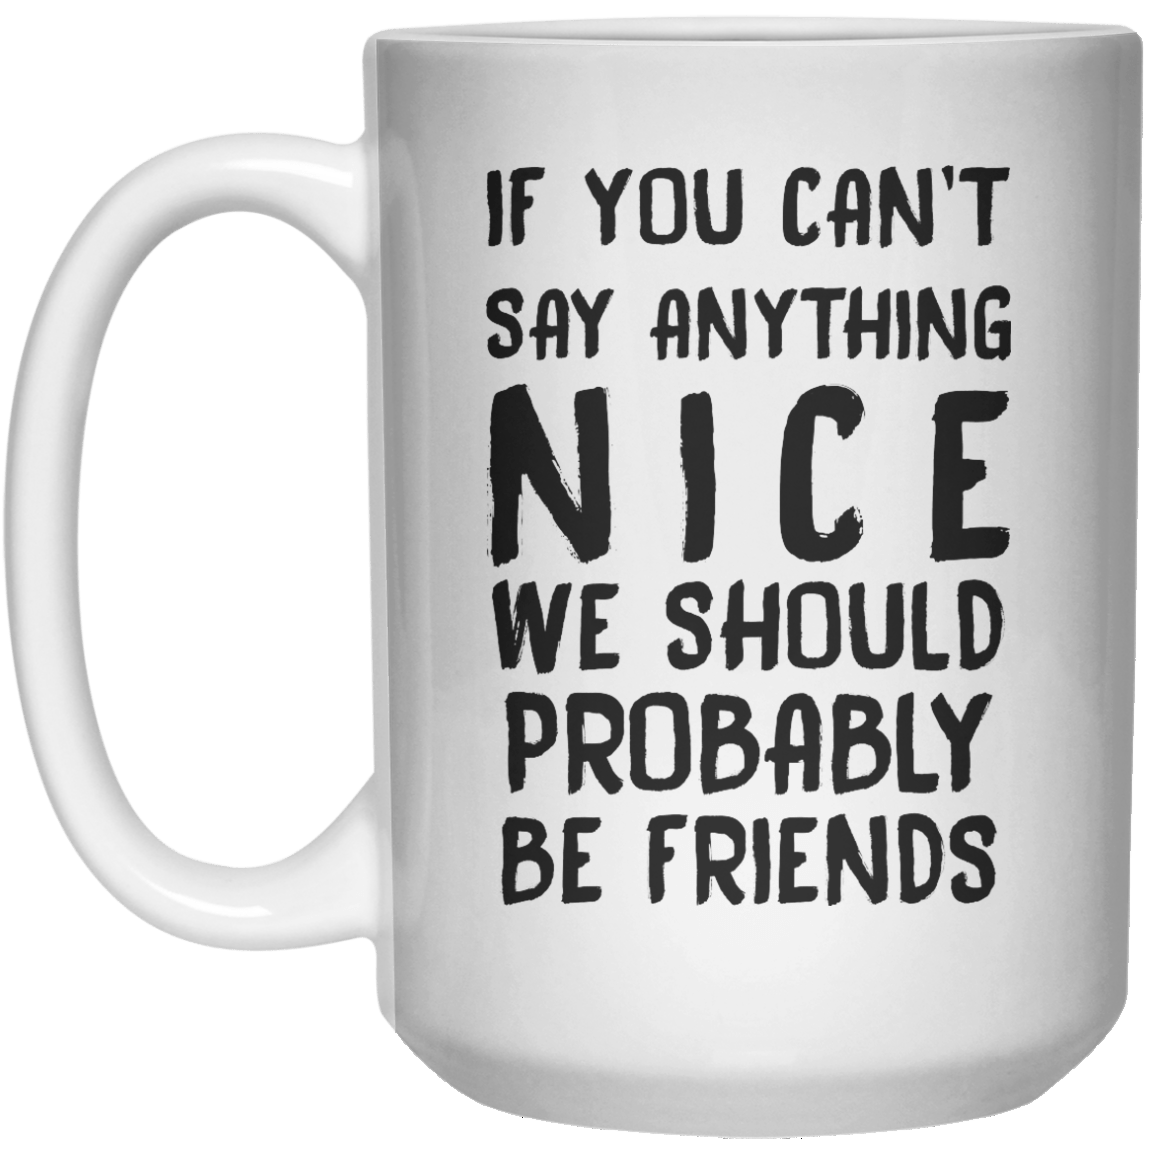 If You Can't Say Anything Nice We Should Probably Be Friends MUG  Mug - 15oz - Shirtoopia